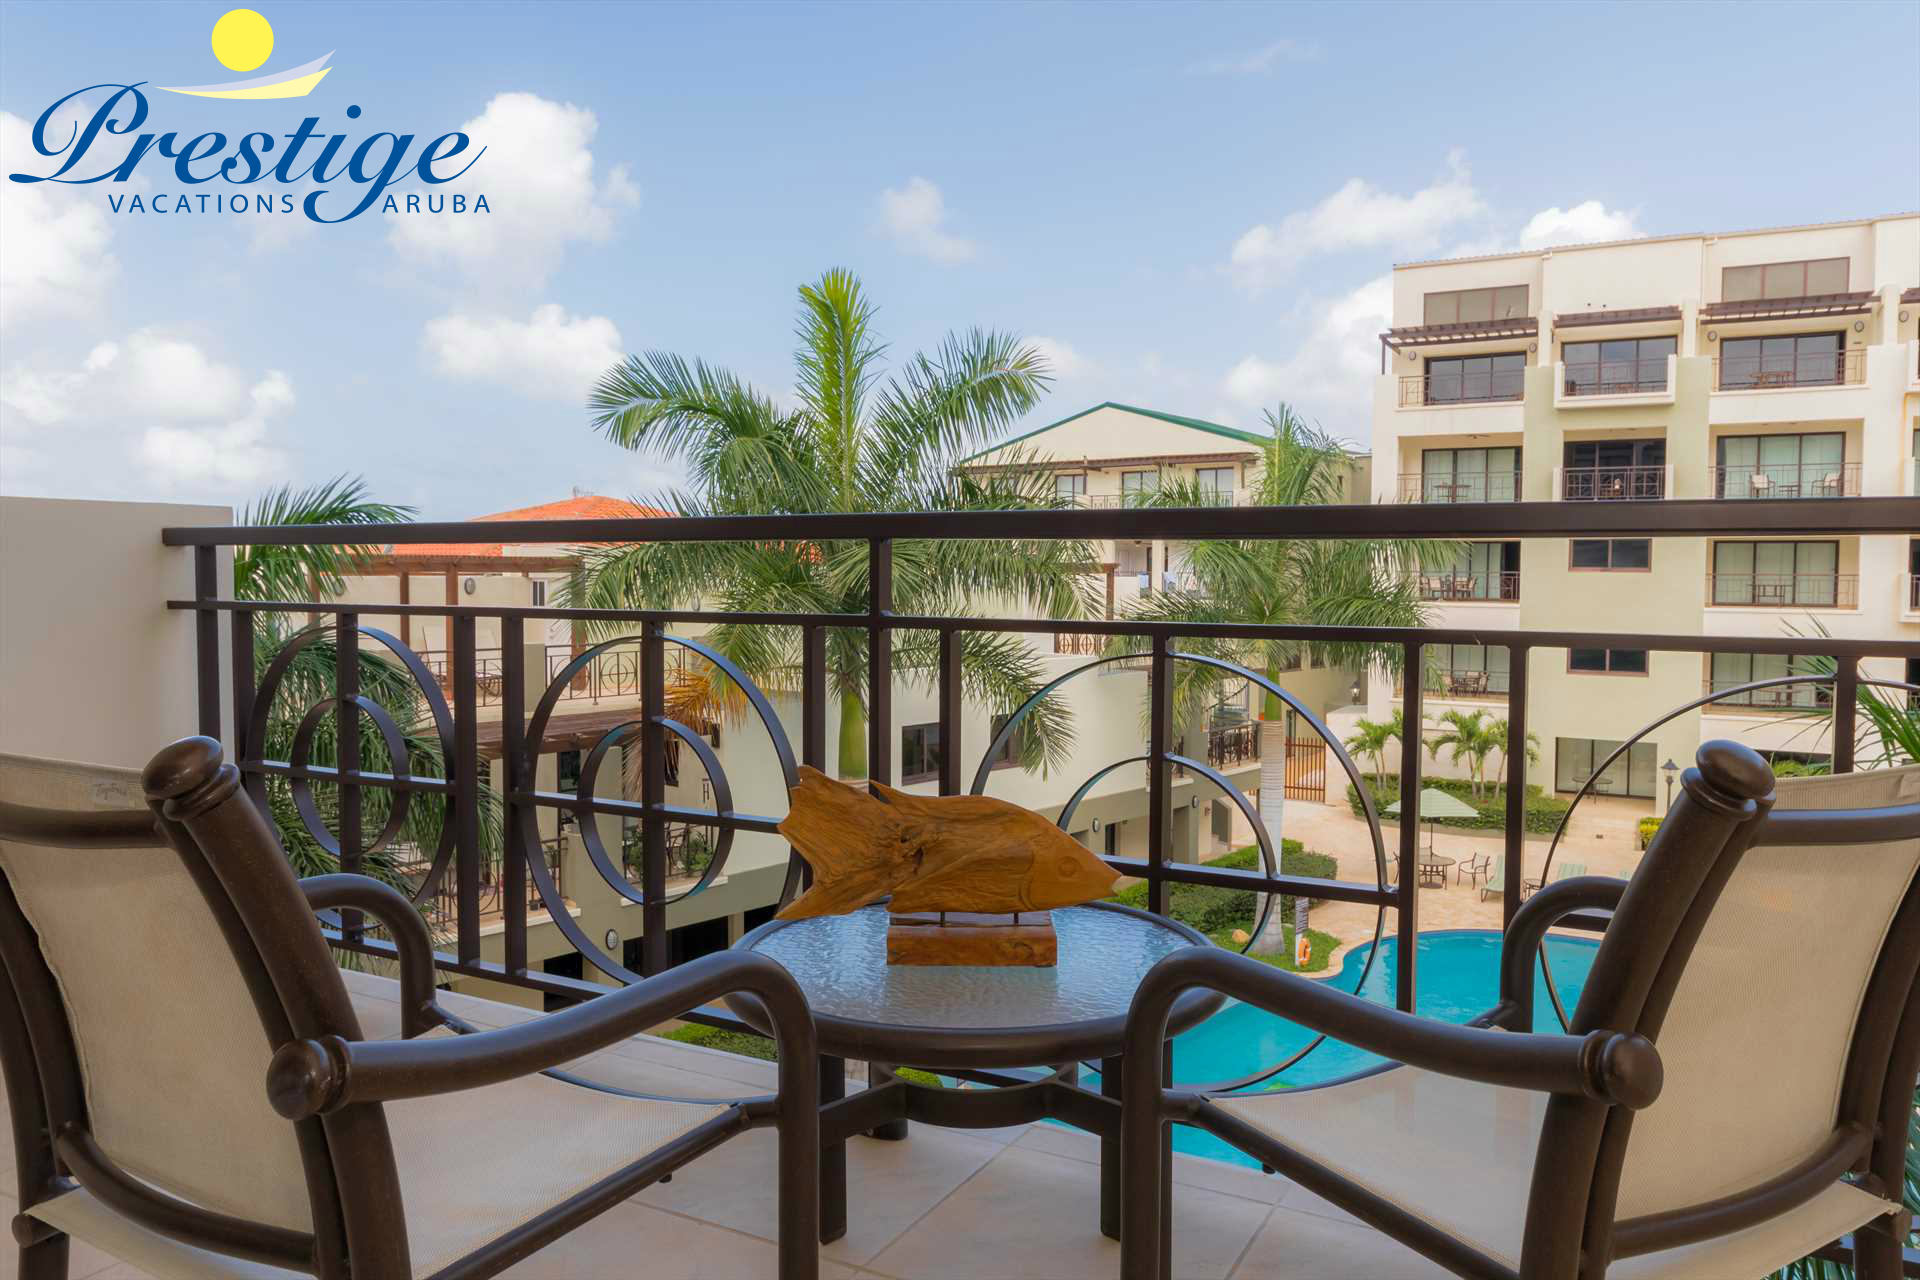 Welcome to your beautiful tropical escape, Coconut Palm One-bedroom condo PC314